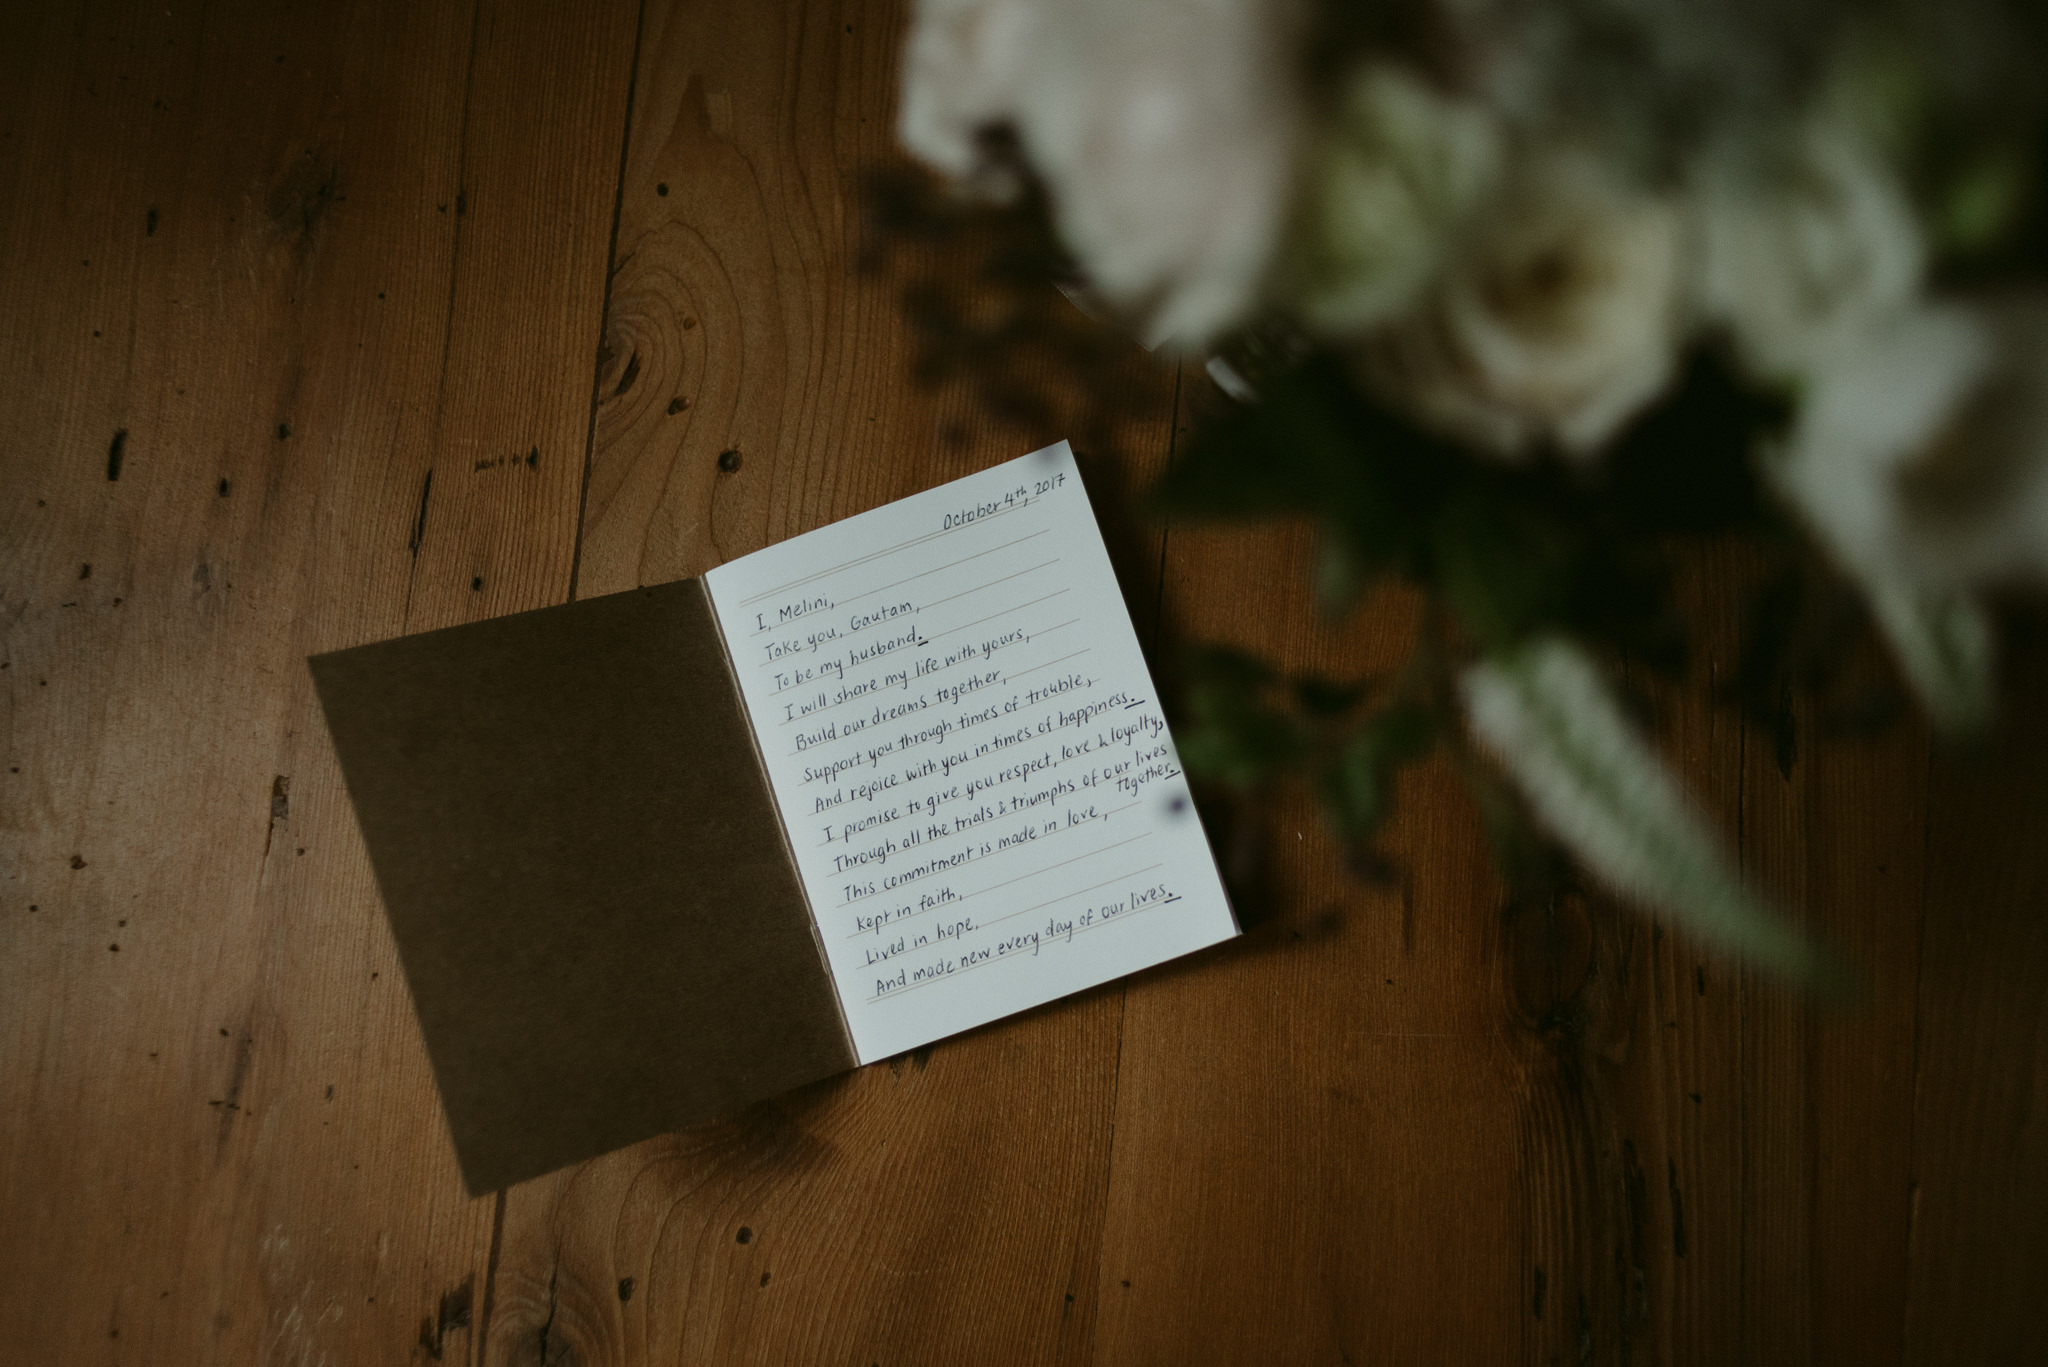 Wedding vows written in book